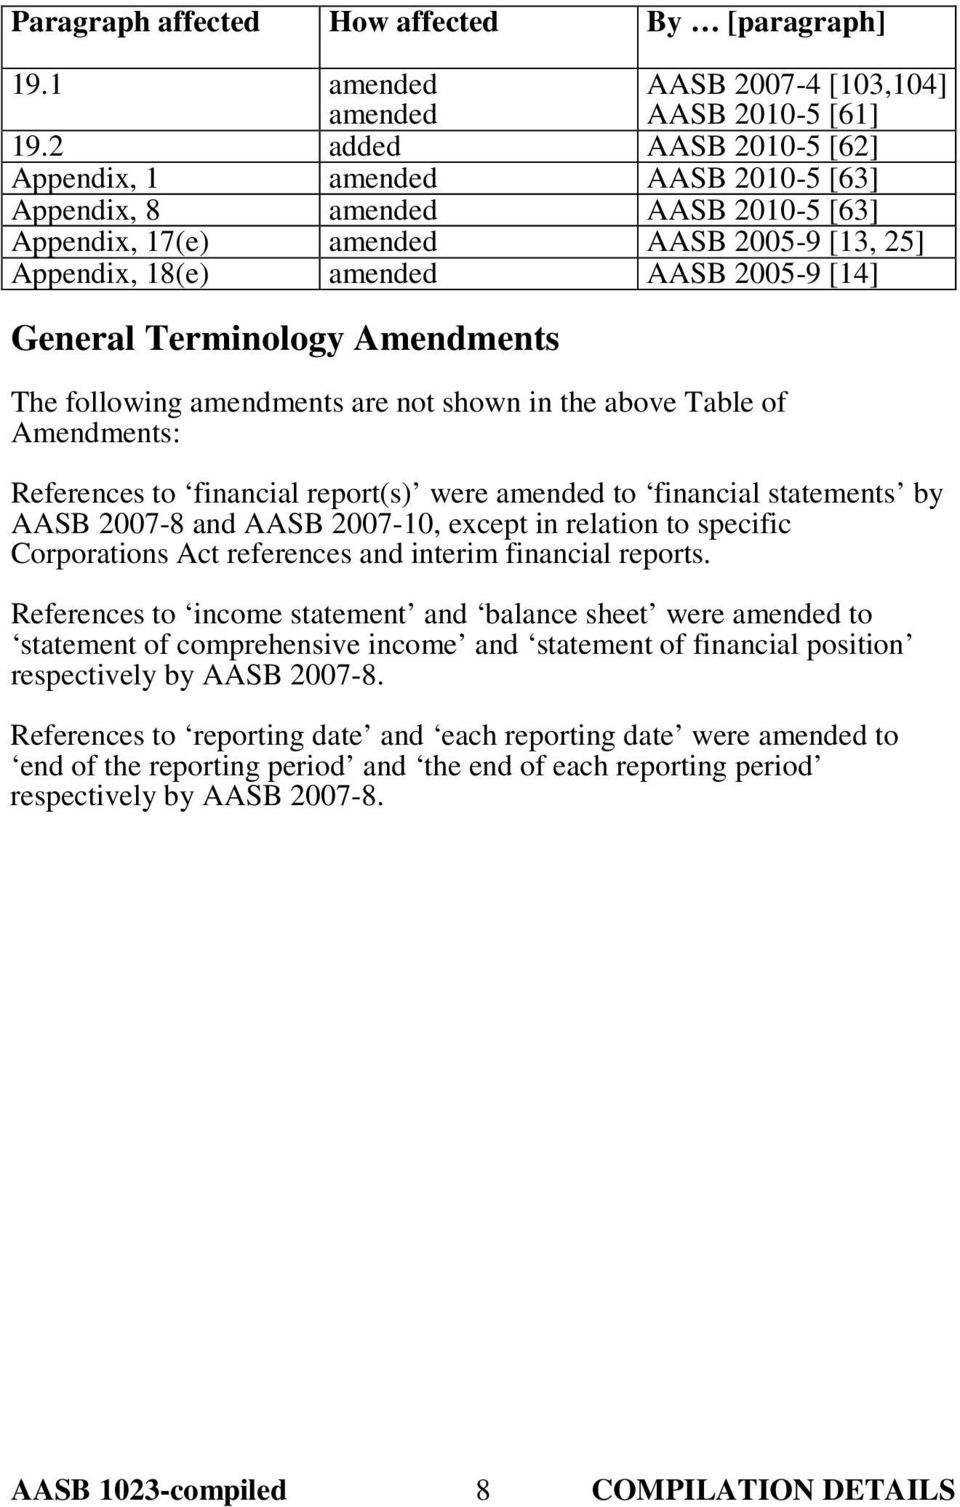 Terminology Amendments The following amendments are not shown in the above Table of Amendments: References to financial report(s) were amended to financial statements by AASB 2007-8 and AASB 2007-10,